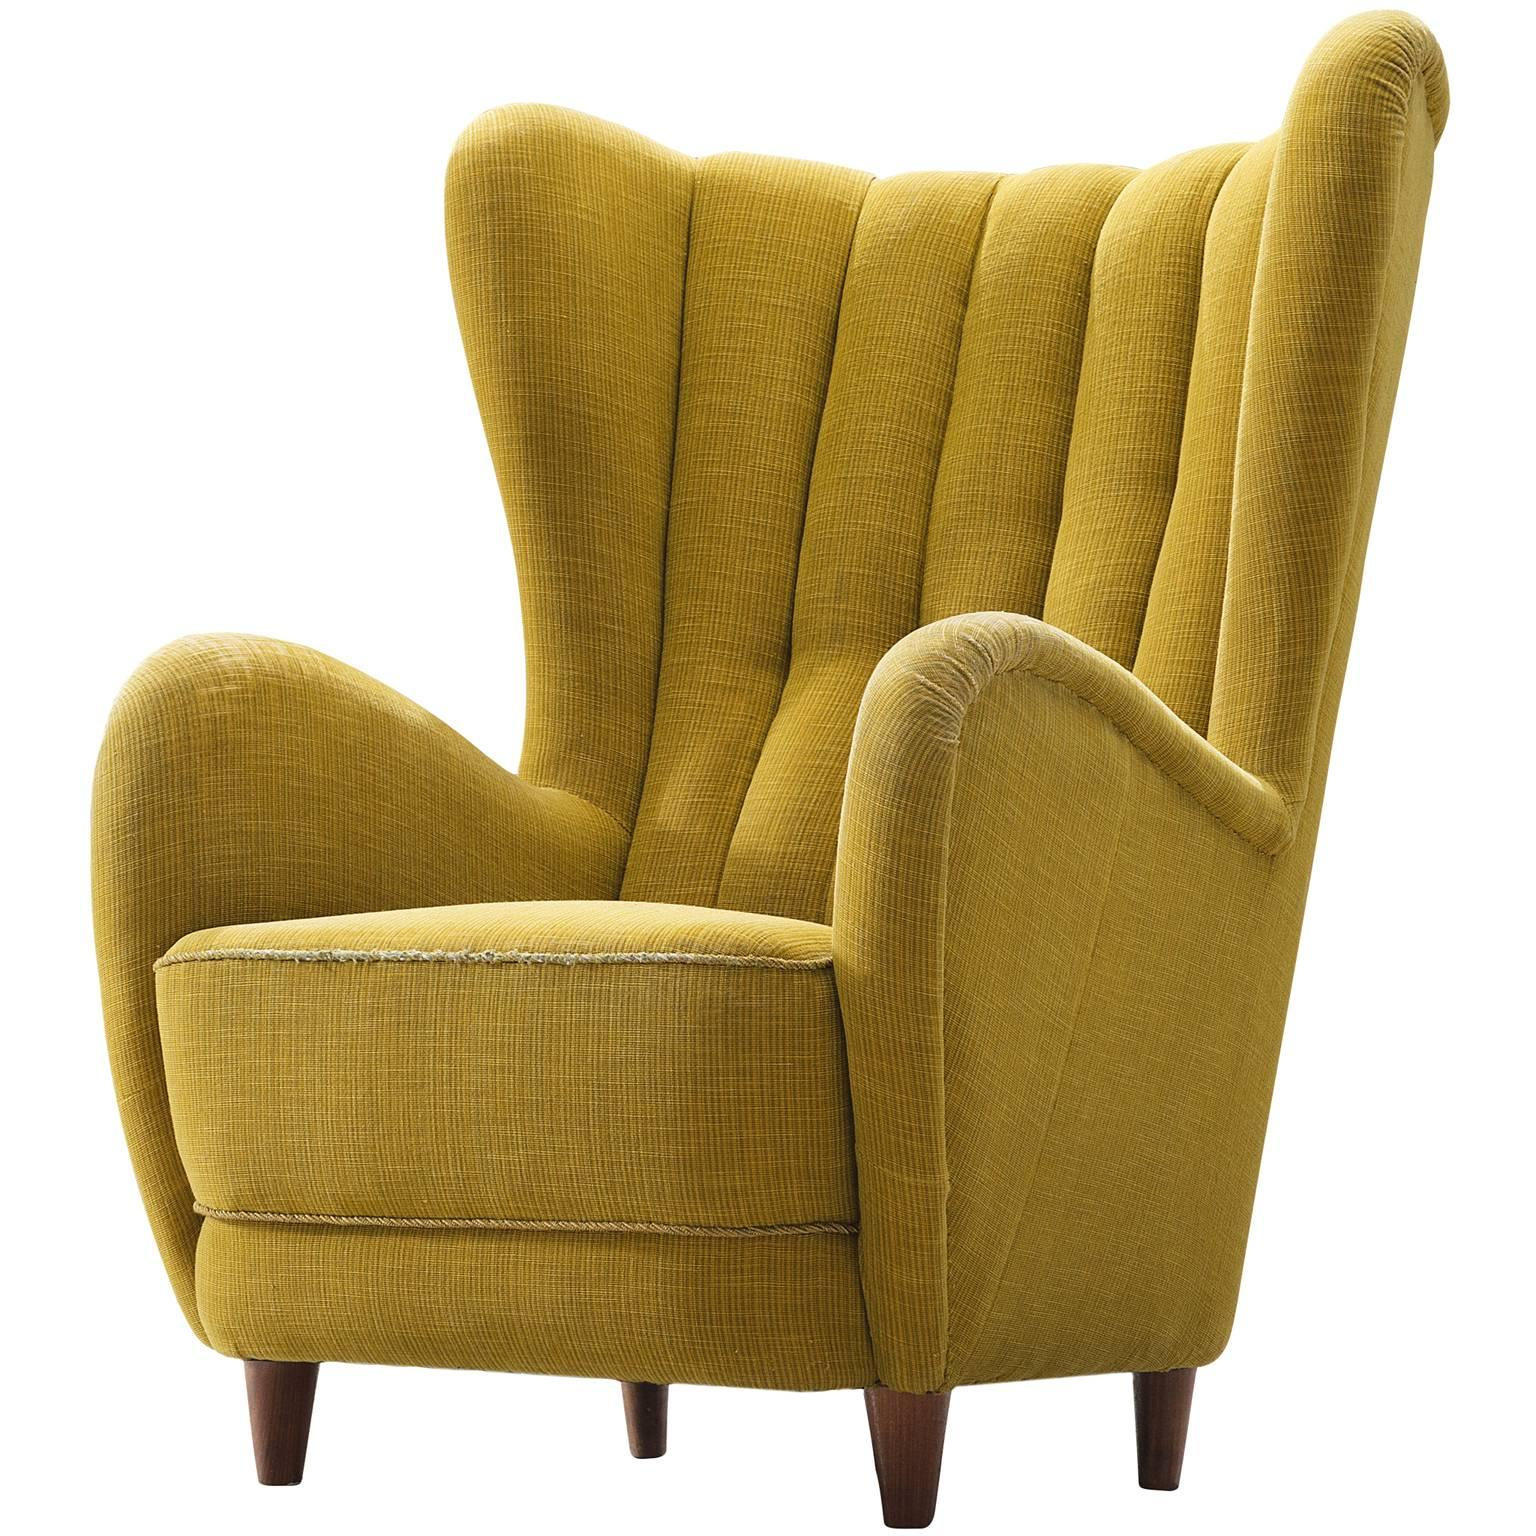 Charmant Danish Wingback Chair In Original Yellow Upholstery For Sale